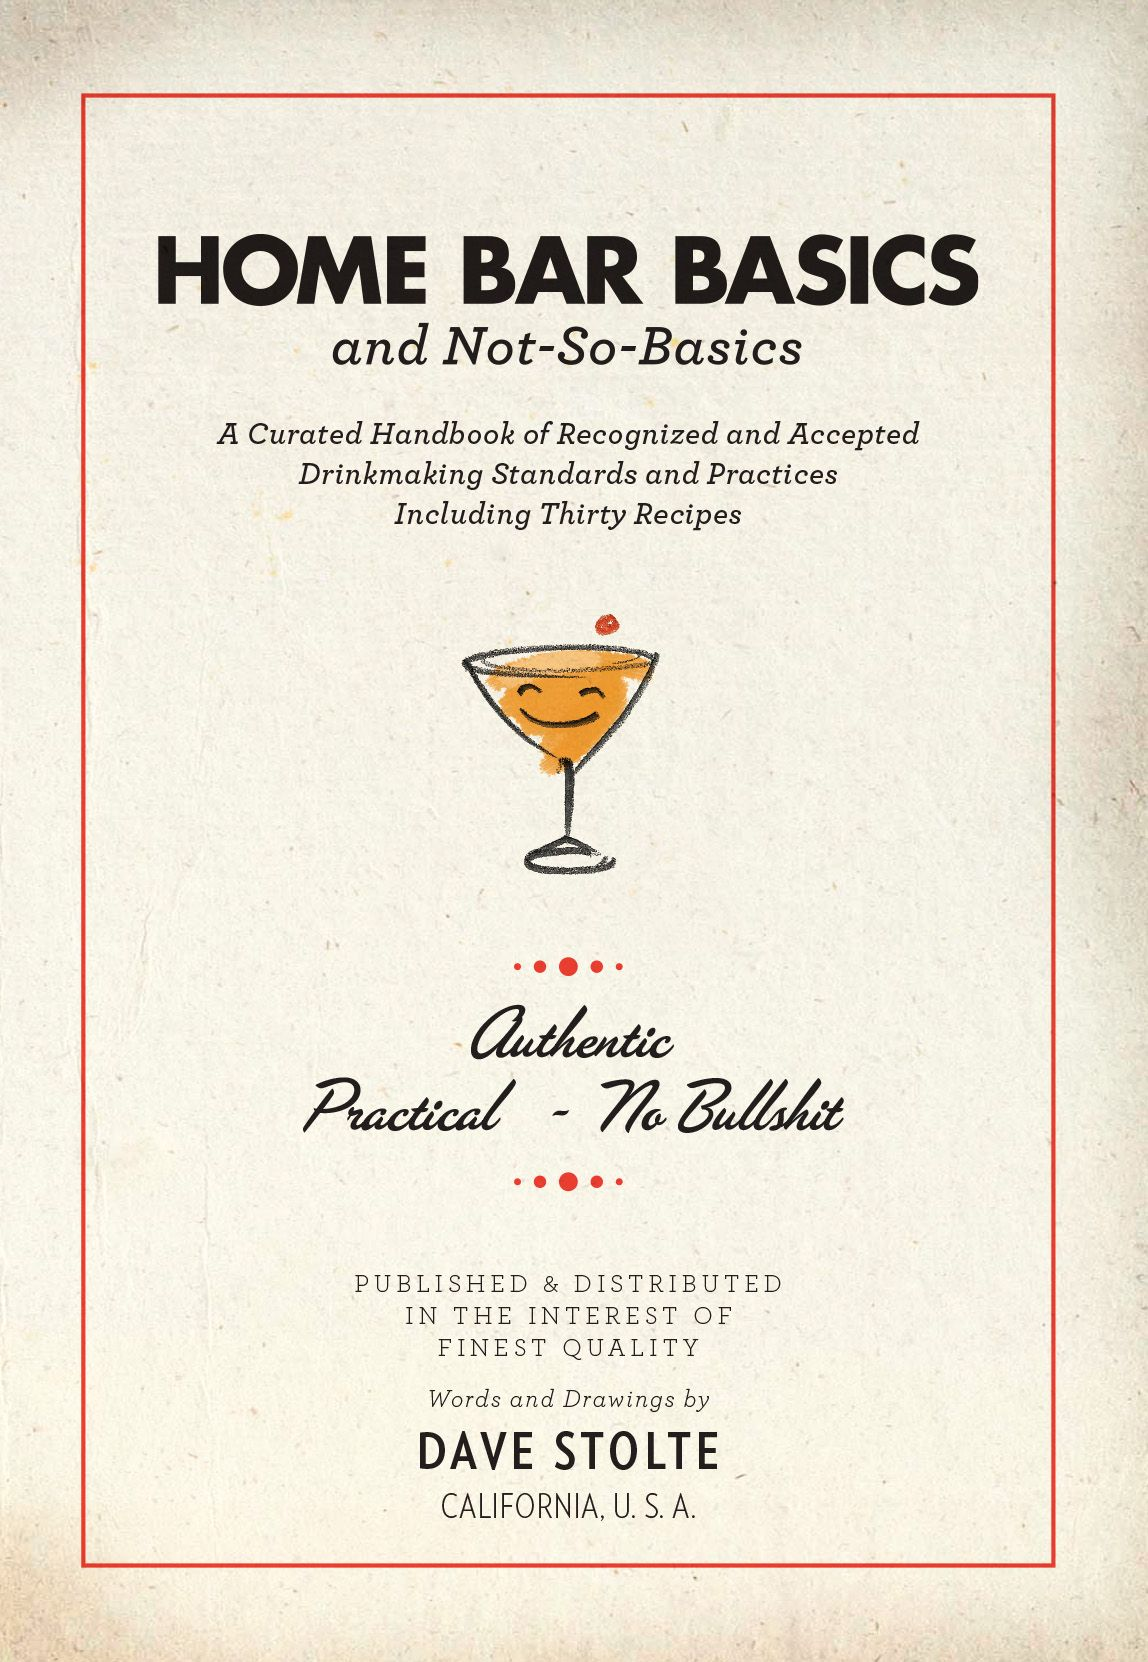 Quot Home Bar Basics And Not So Basics Quot Is A Concise Pocket